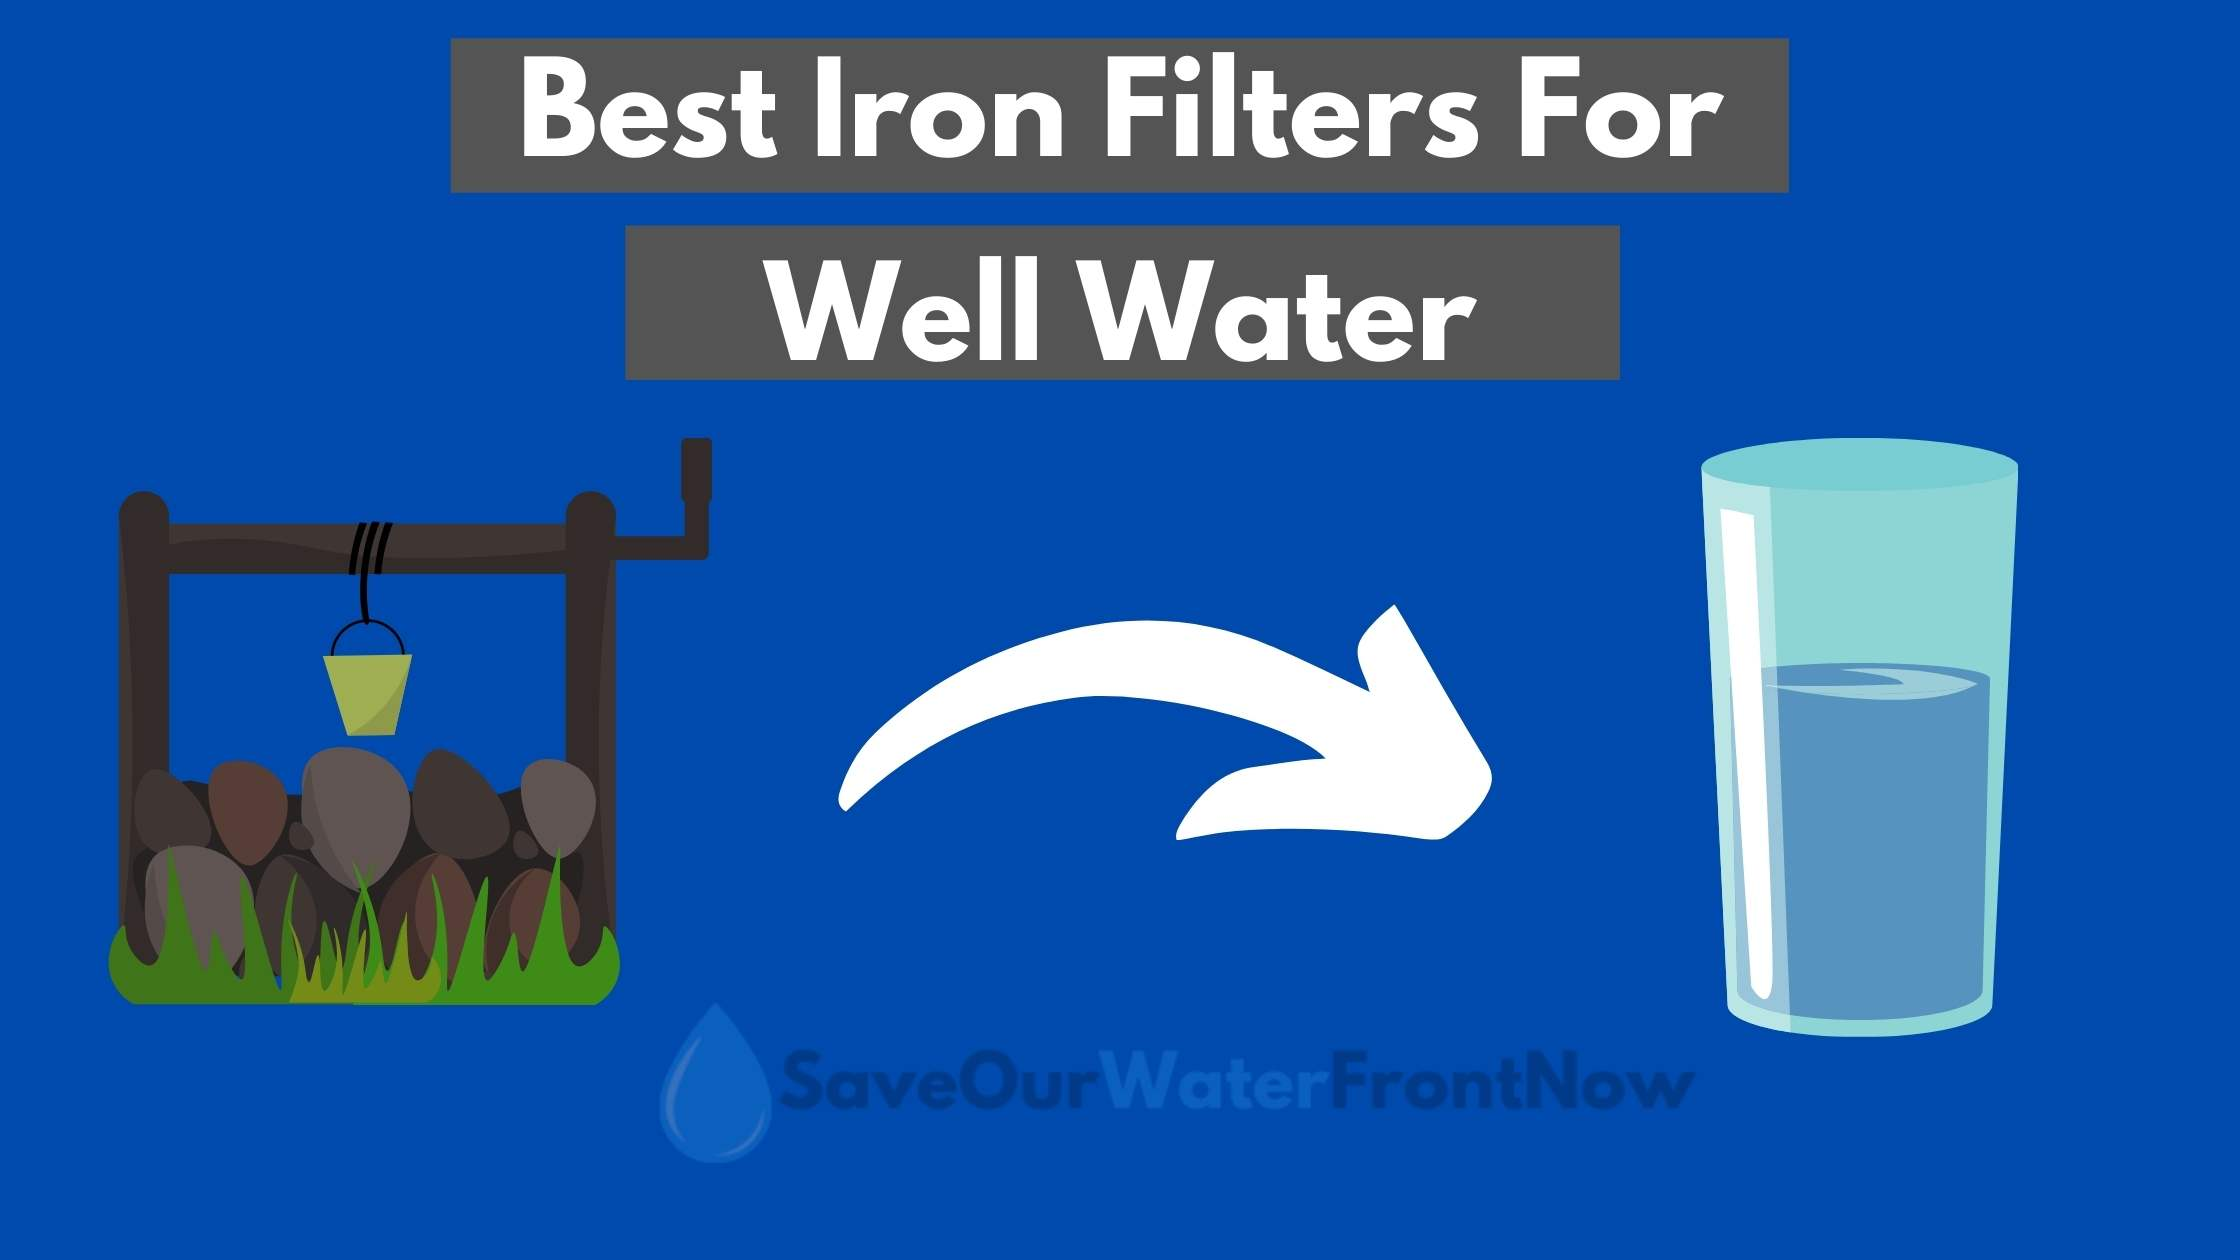 Best-Iron-Filters-For-Well-Water